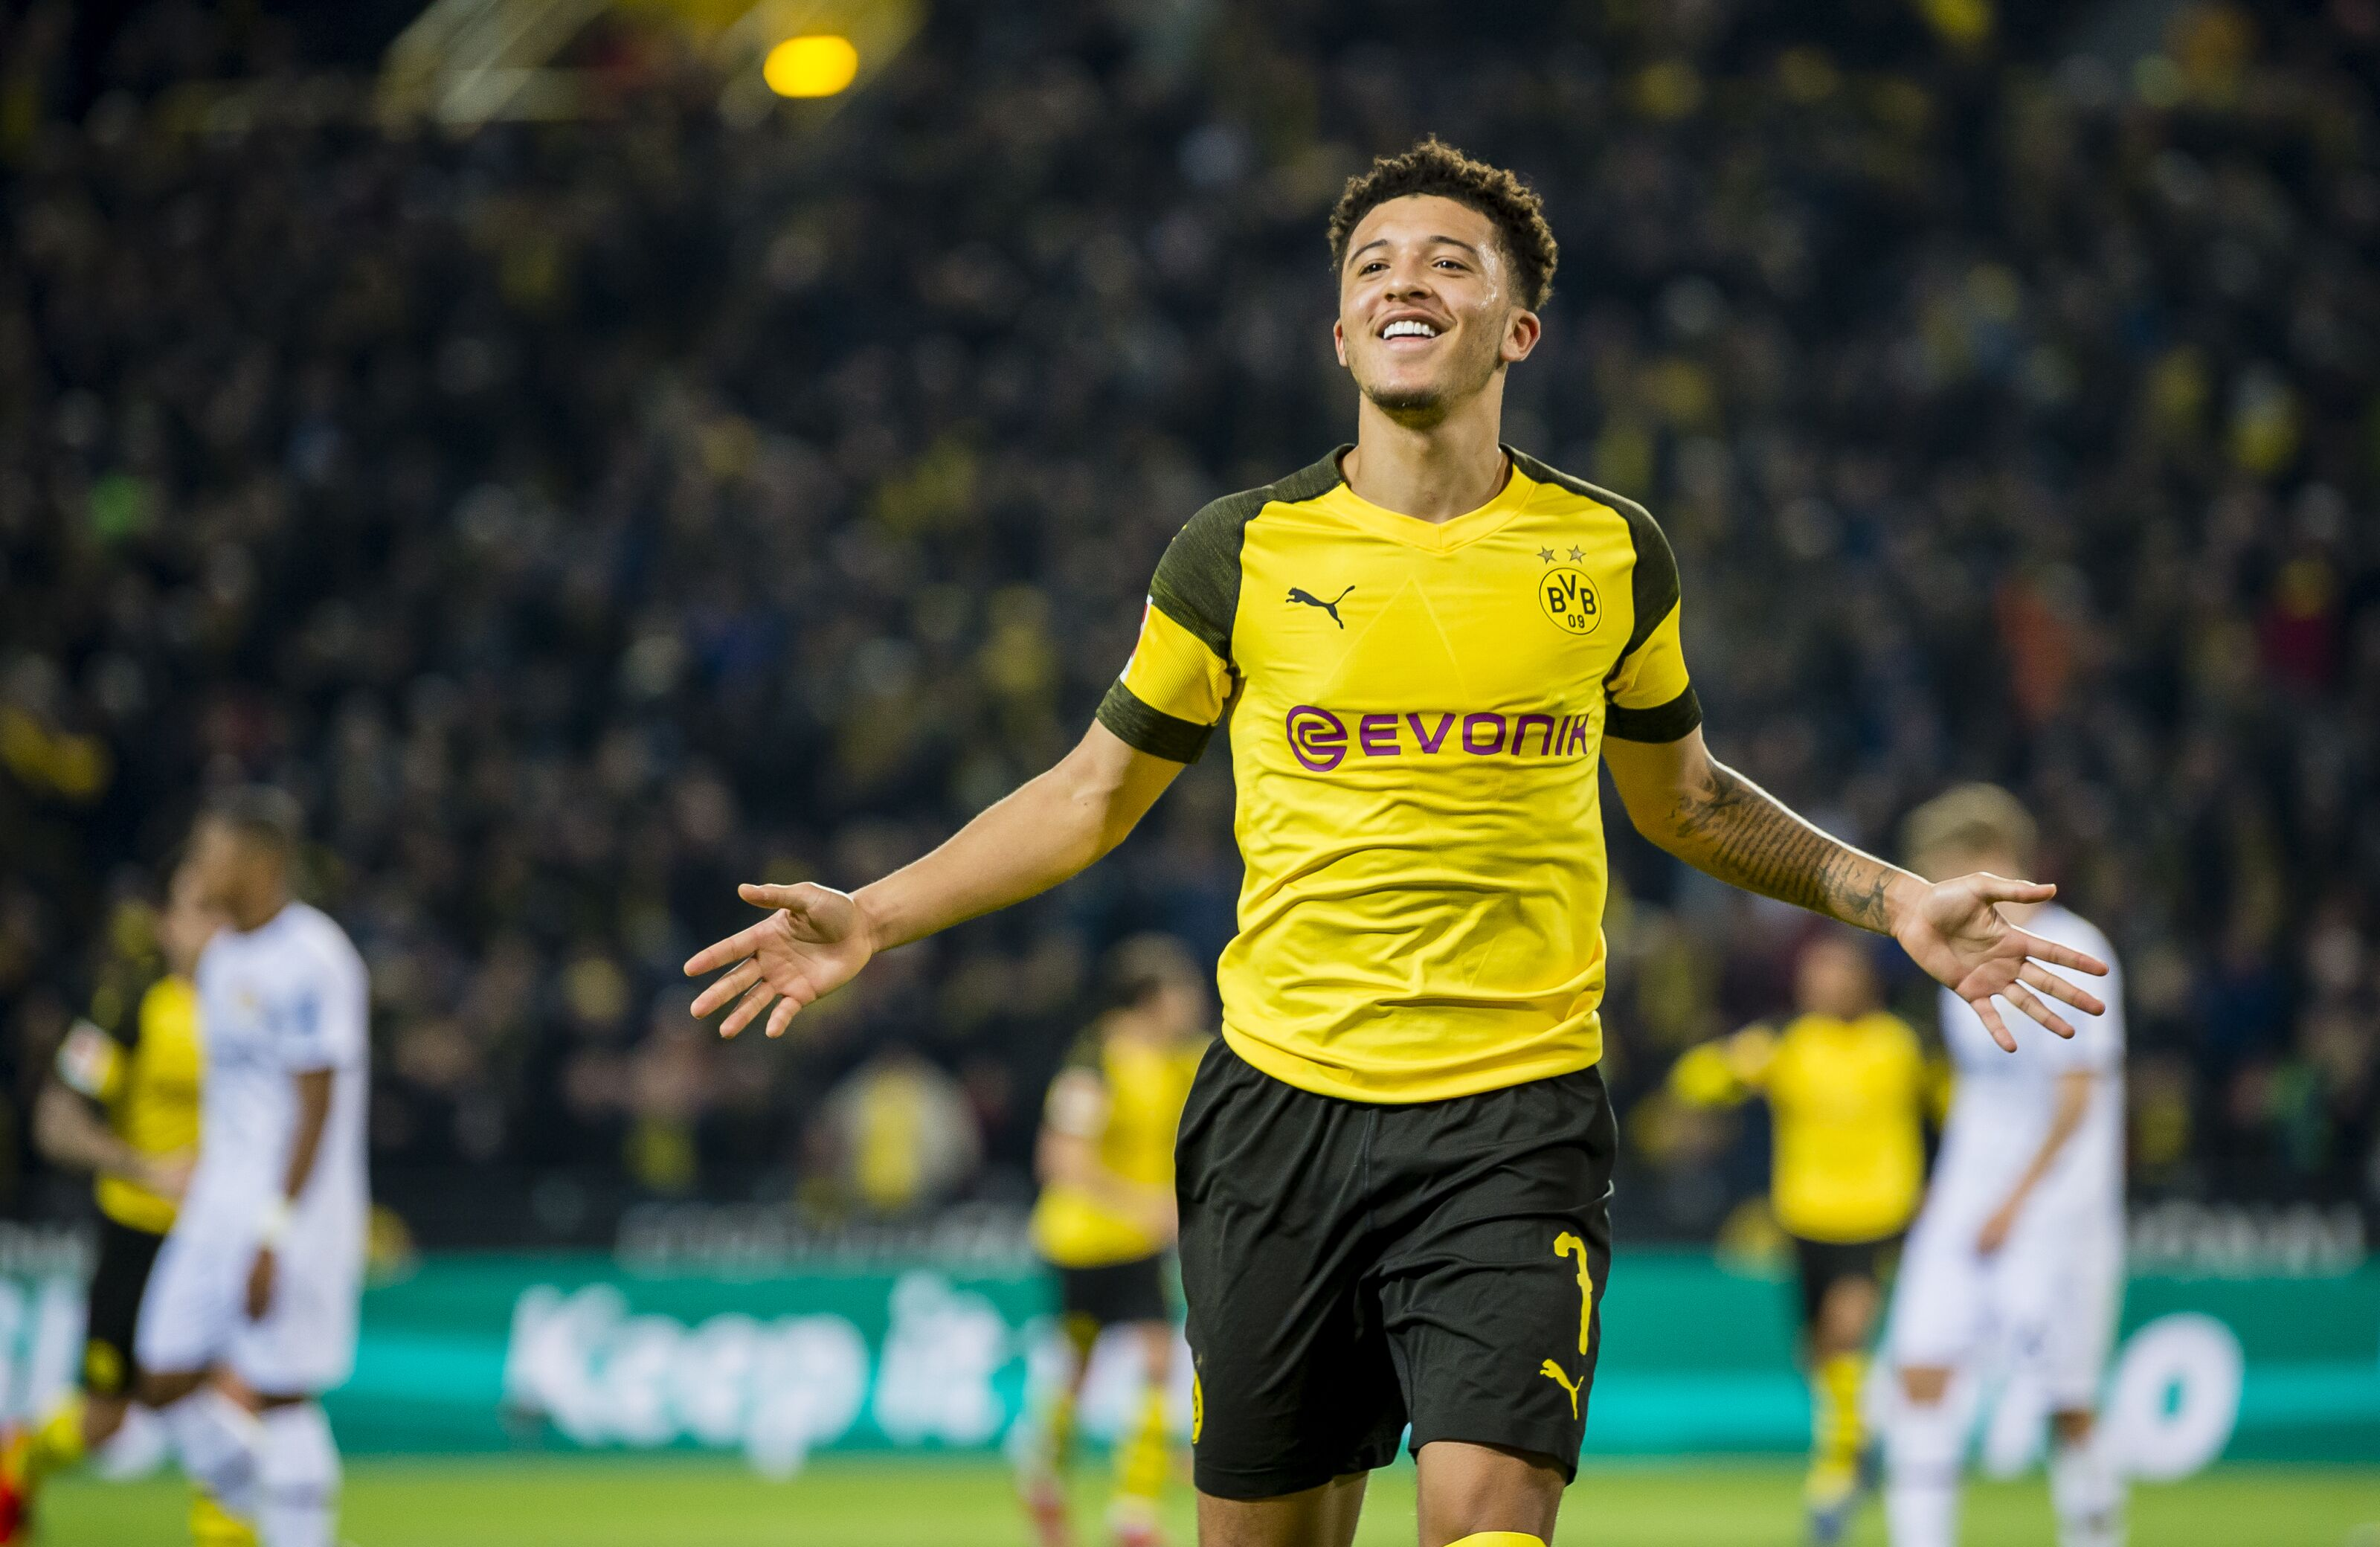 The Unsellables: Which players can Borussia Dortmund not afford to lose?